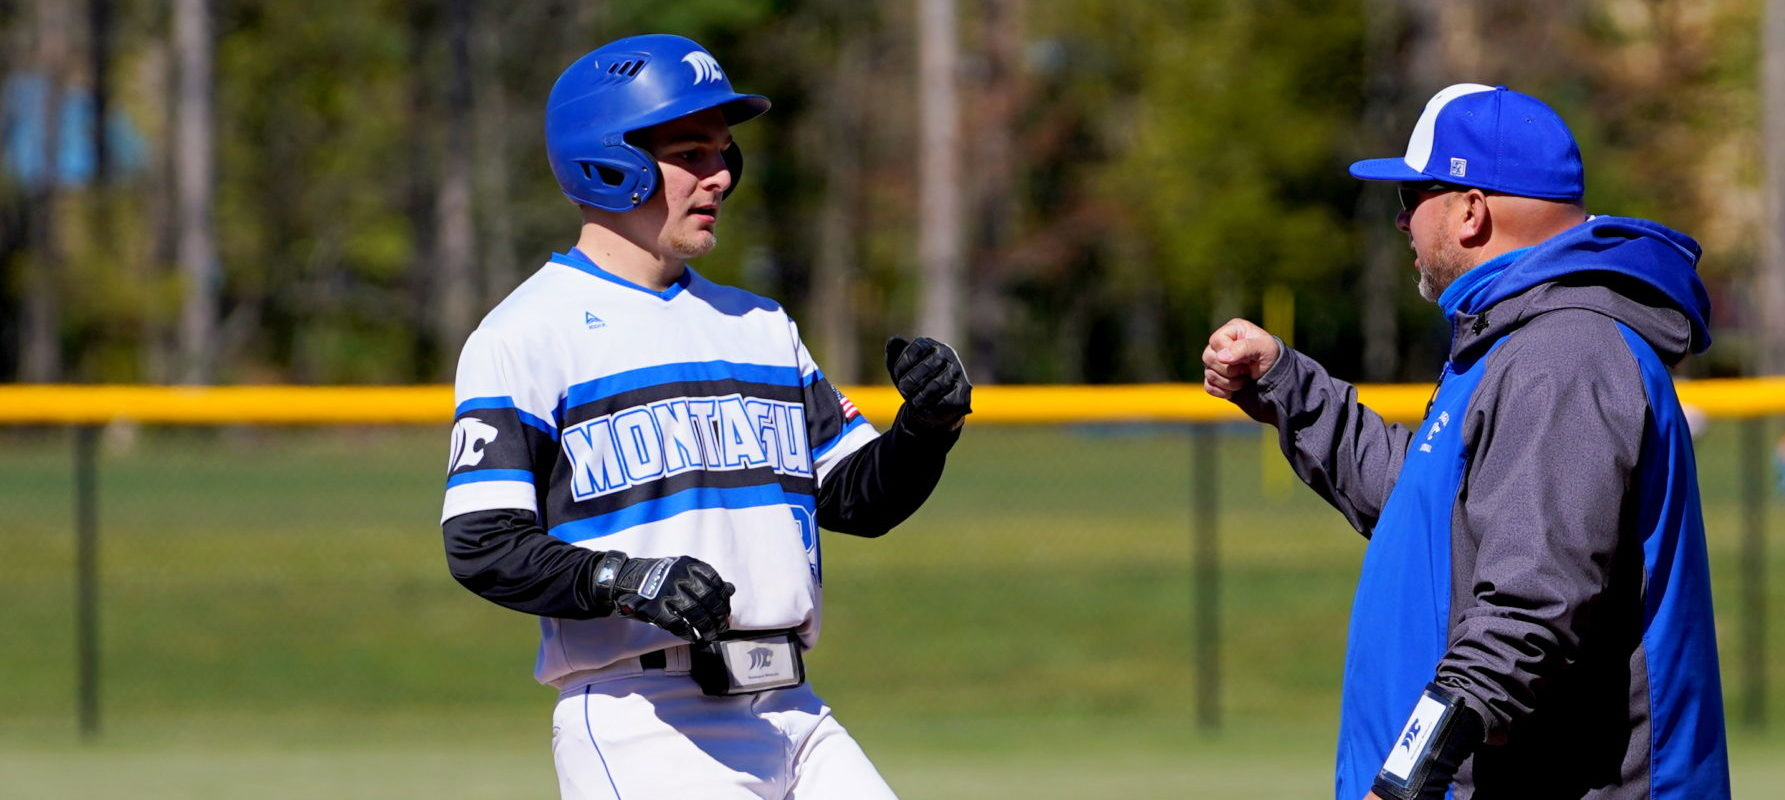 Montague baseball remains unbeaten against conference opponents following a doubleheader sweep over Whitehall